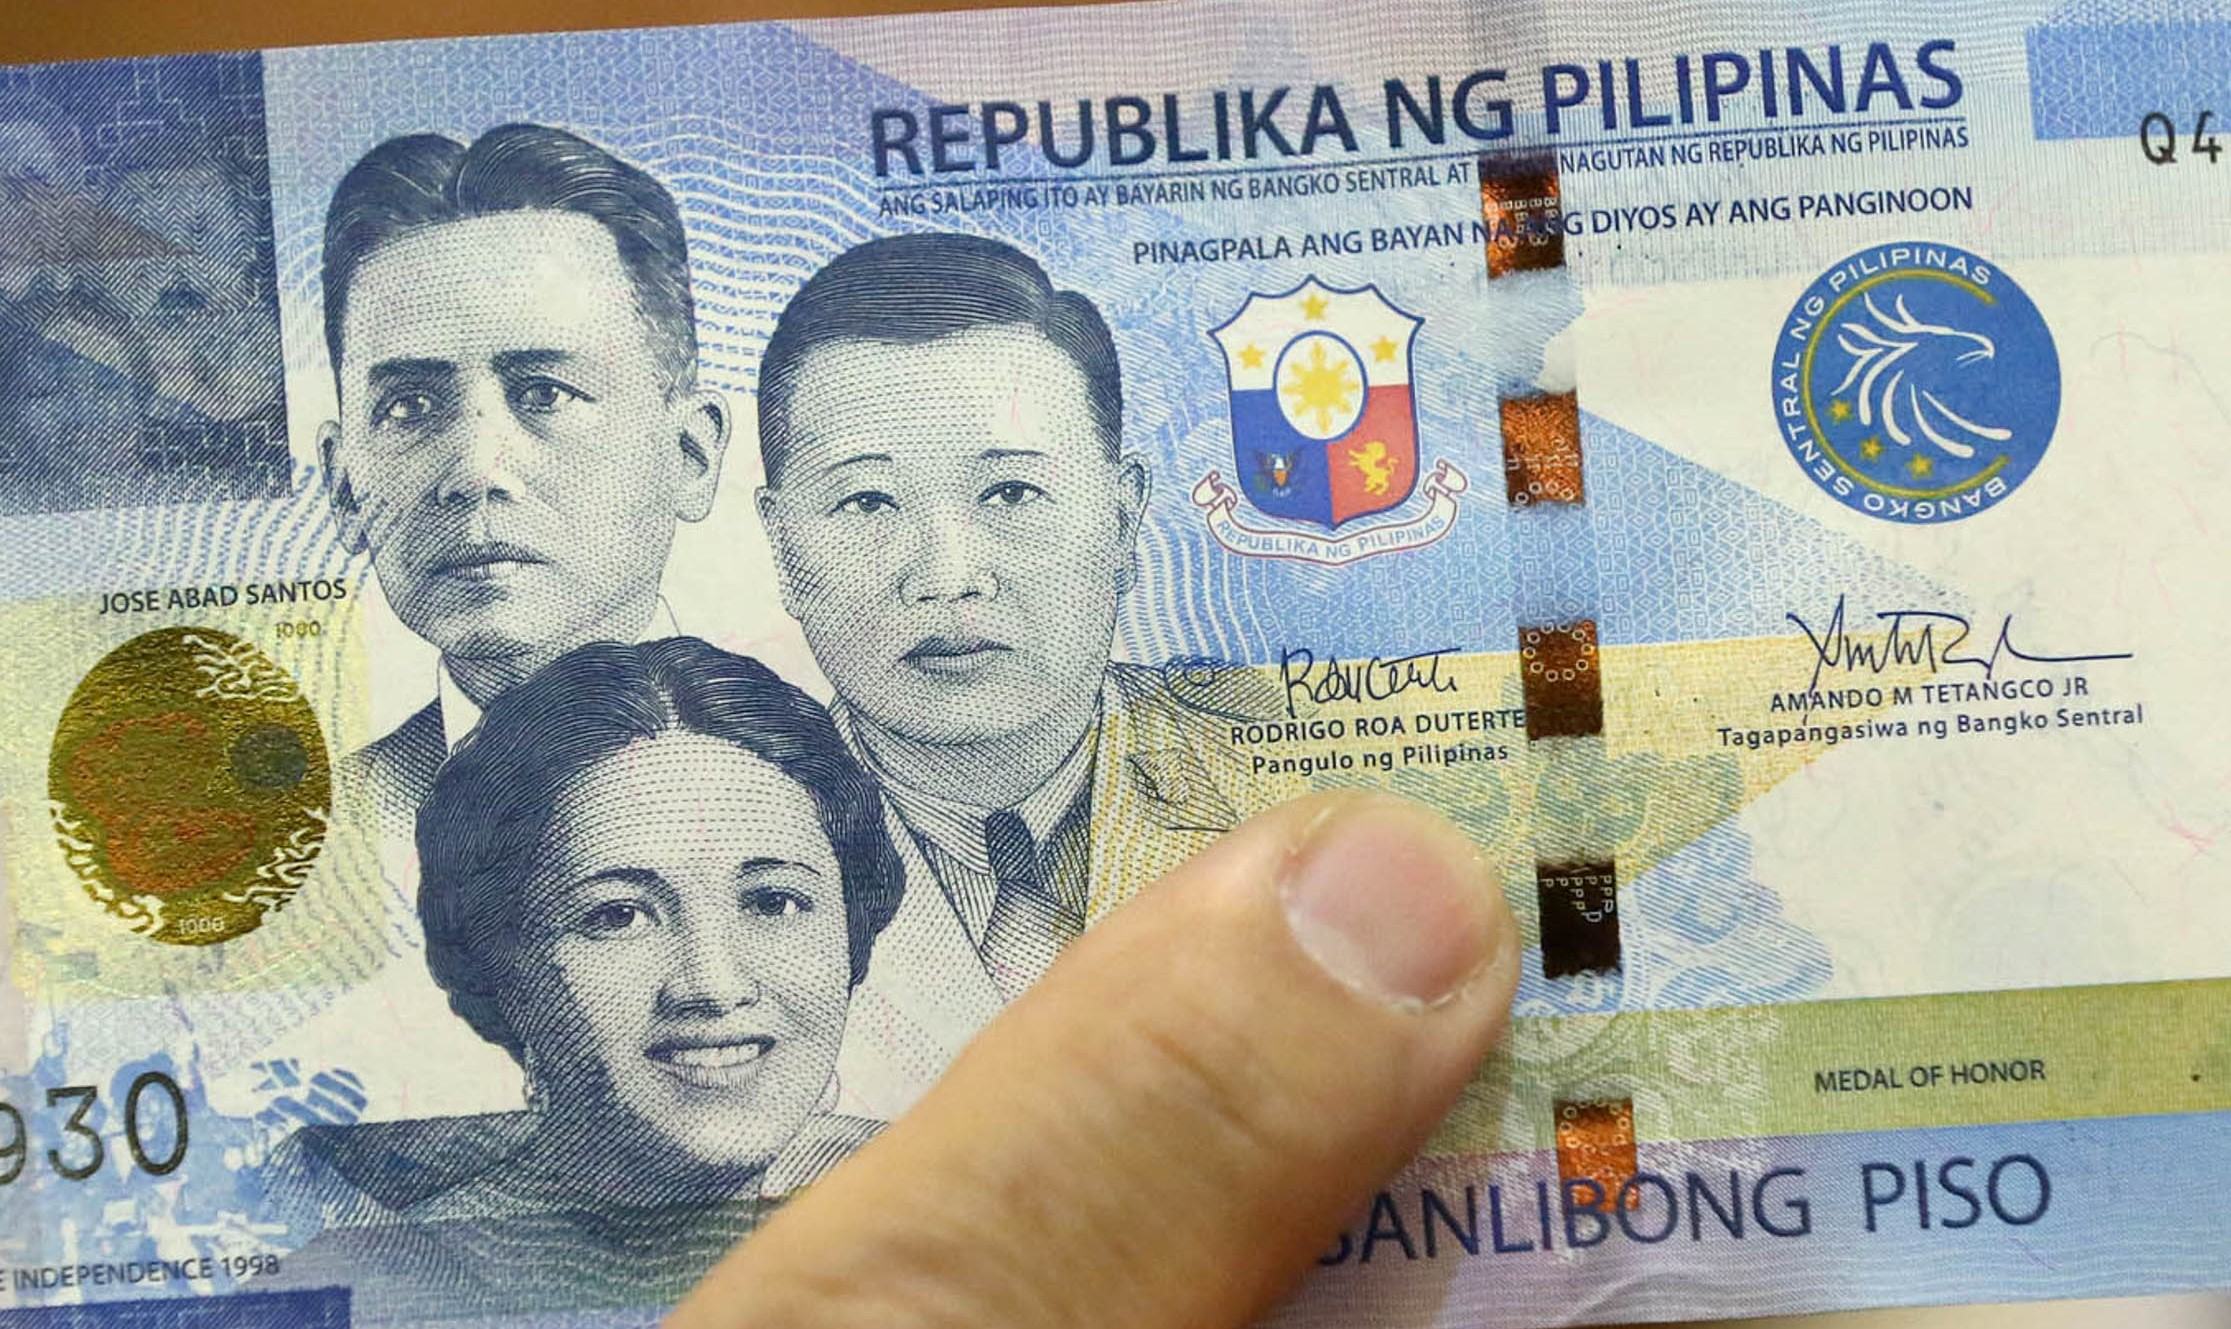 Peso bills signed by Duterte released